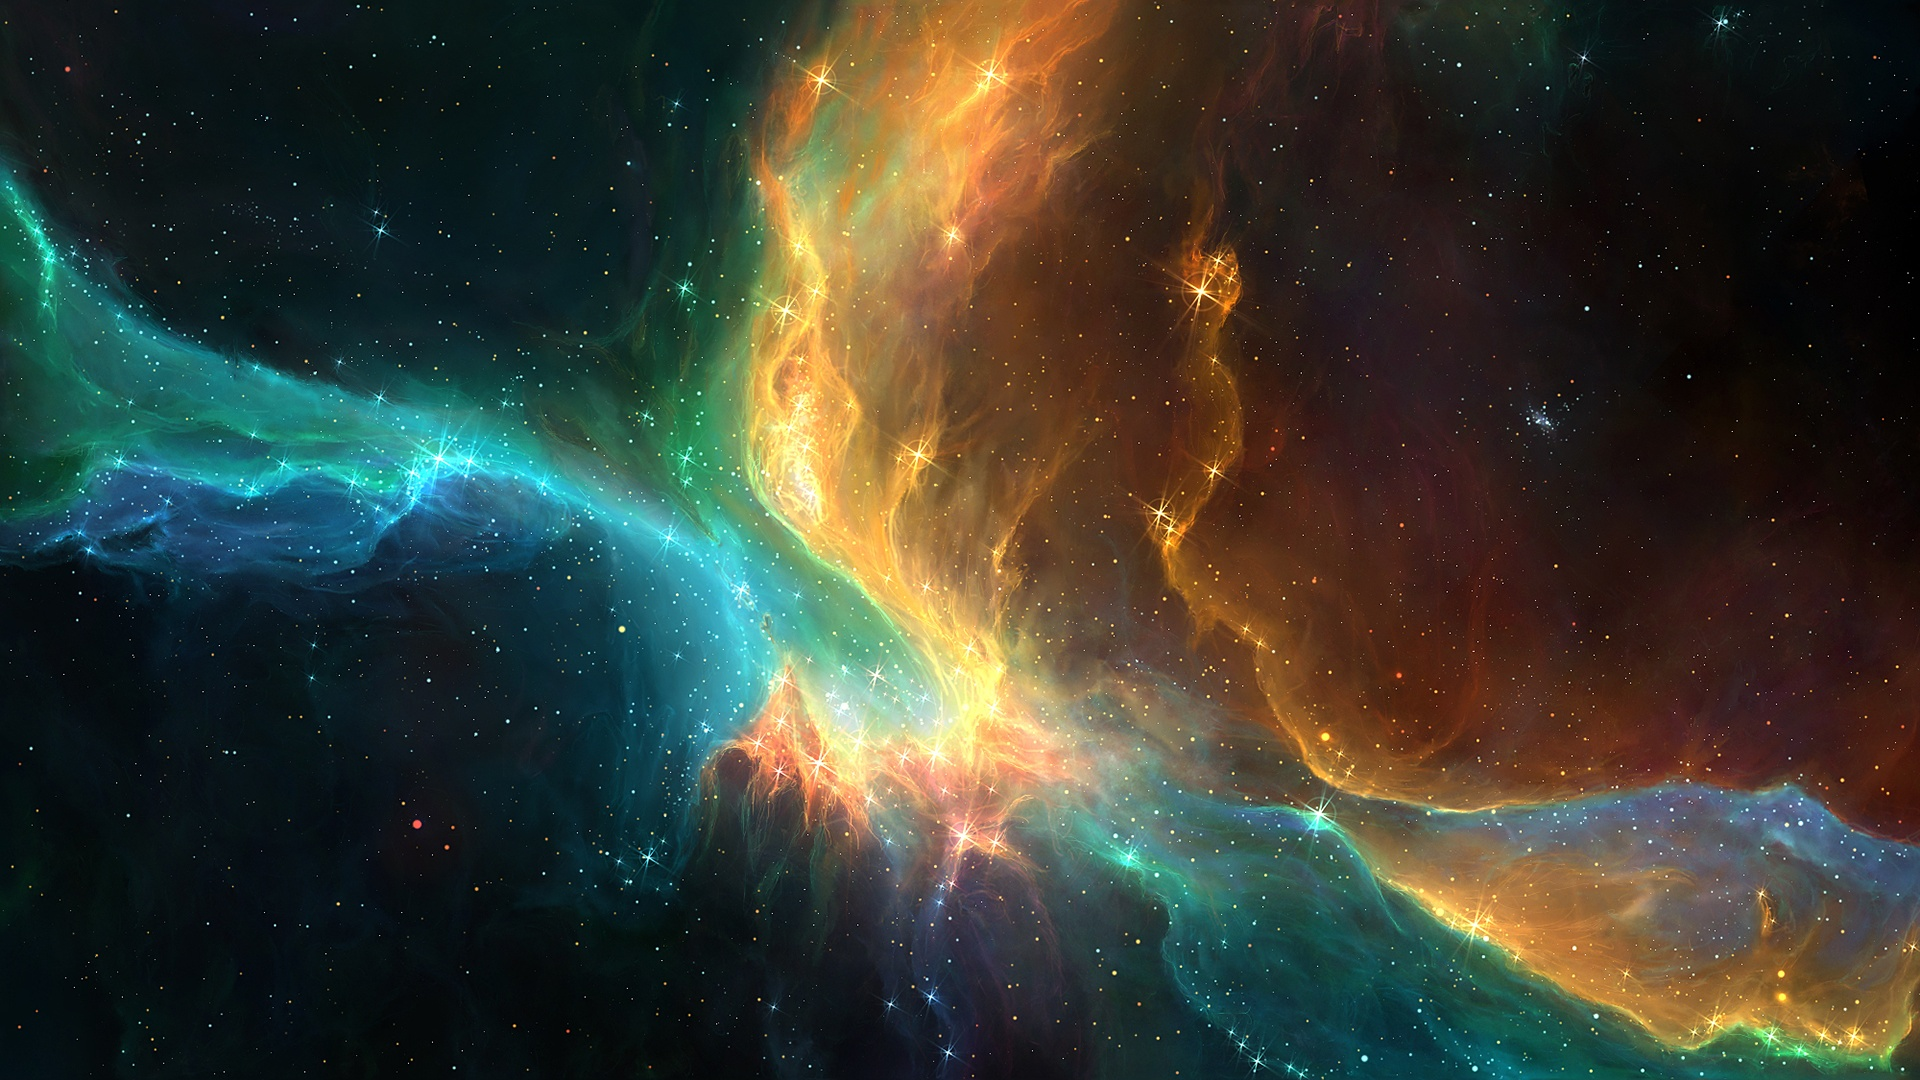 wallpaper.wiki-Wonderful-Nebula-Galaxy-1080p-Space-Background-PIC-WPD008682